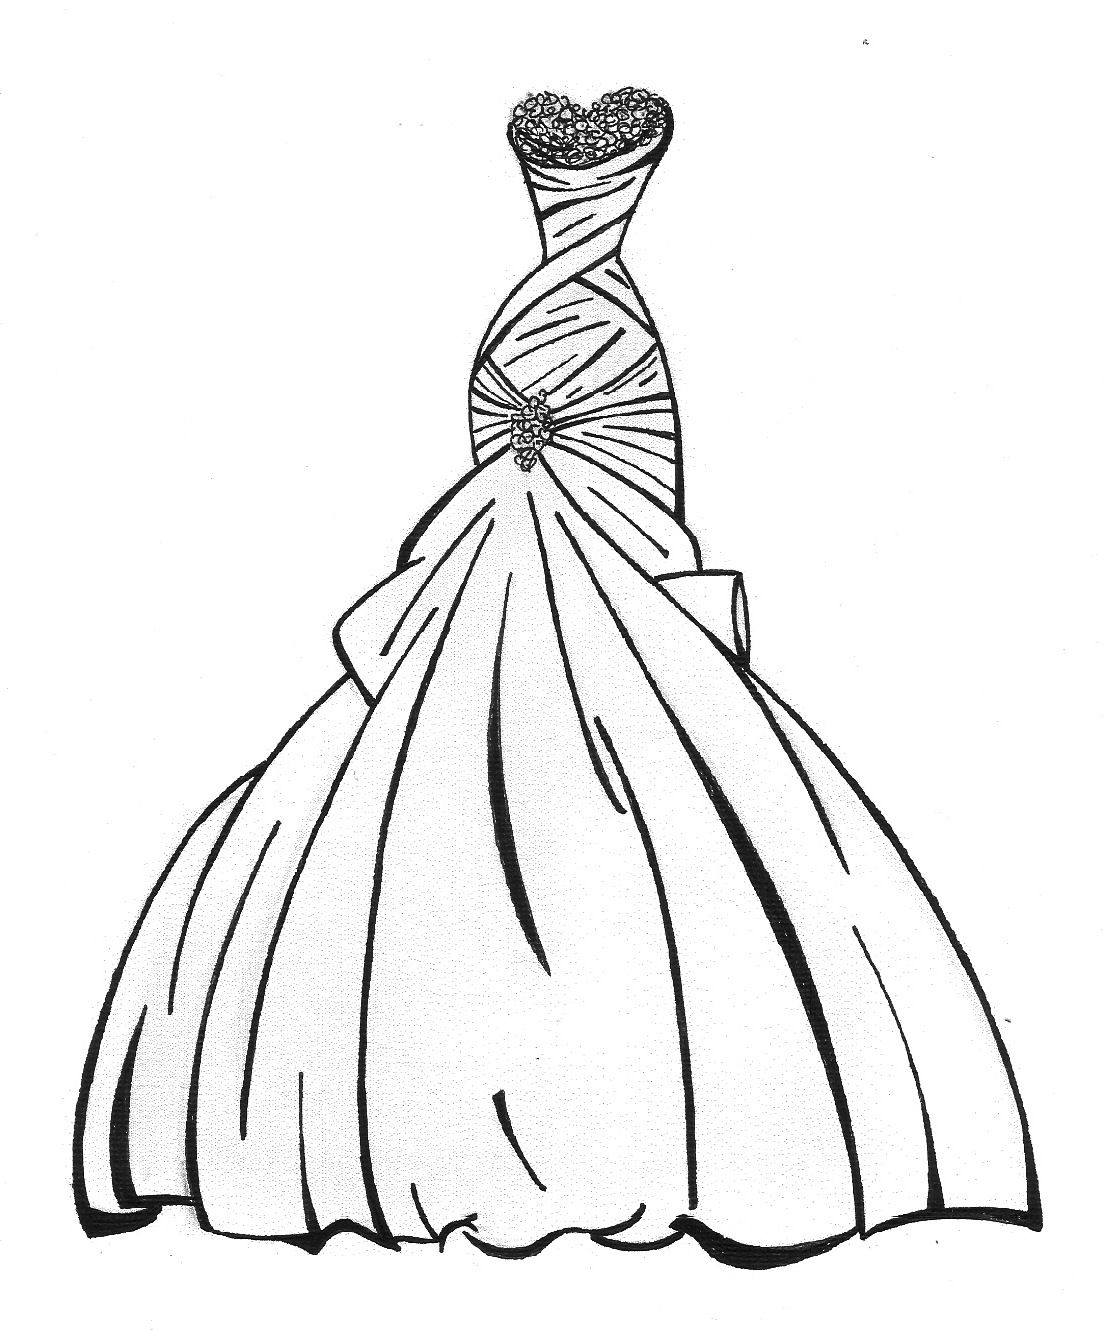 Dress Coloring Pages Necord | Ruha-mintatervezés rajzra | Pinterest ...